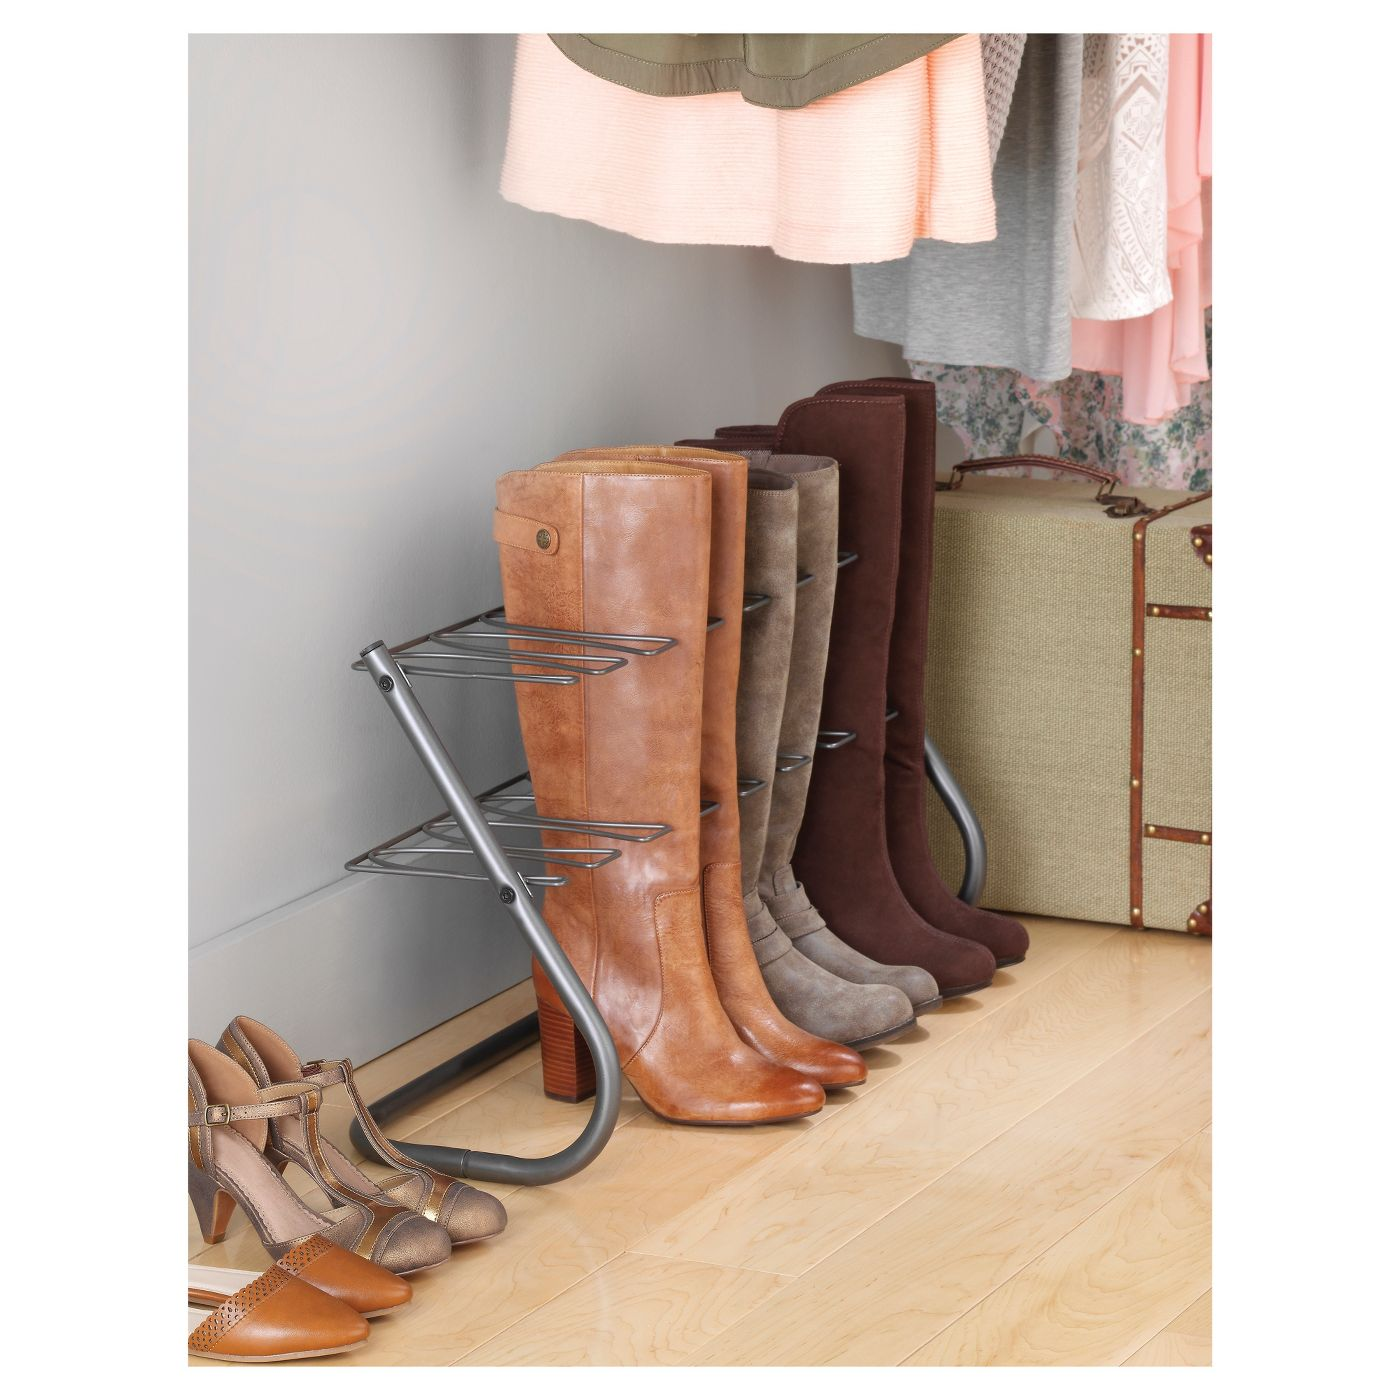 When winter season rolls around, you'll need a dependable storage system for your boots. This metal boot rack is sturdy and keeps the boots upright and in shape.BUY IT: $19.89; target.com